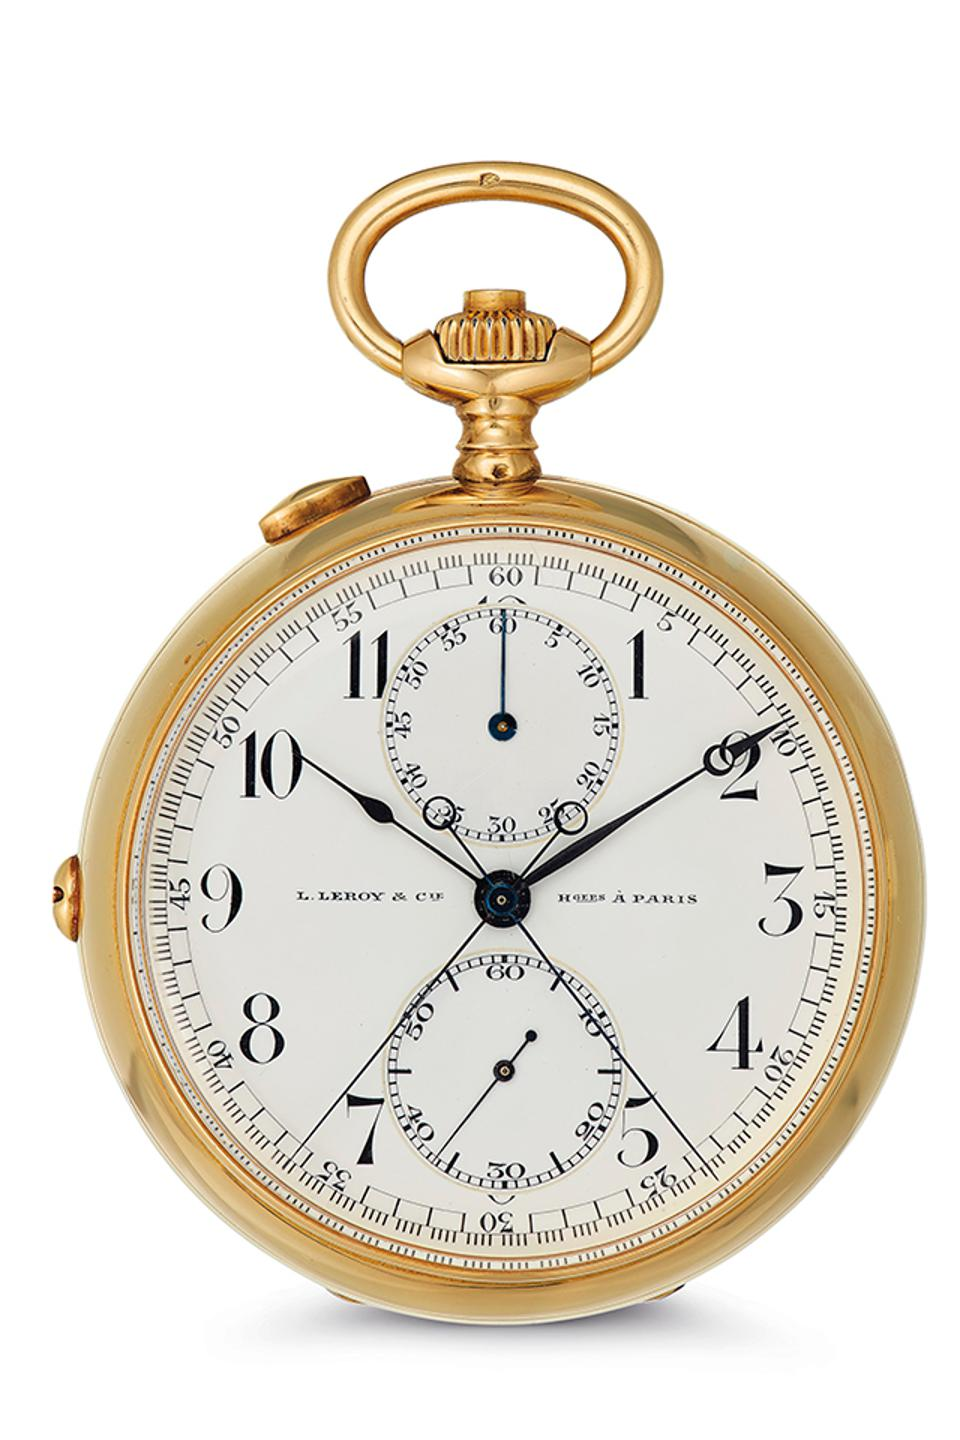 A Leroy & Cie pocket watch once owned by Ernest Hemingway, to be auctioned next week by Christe's.